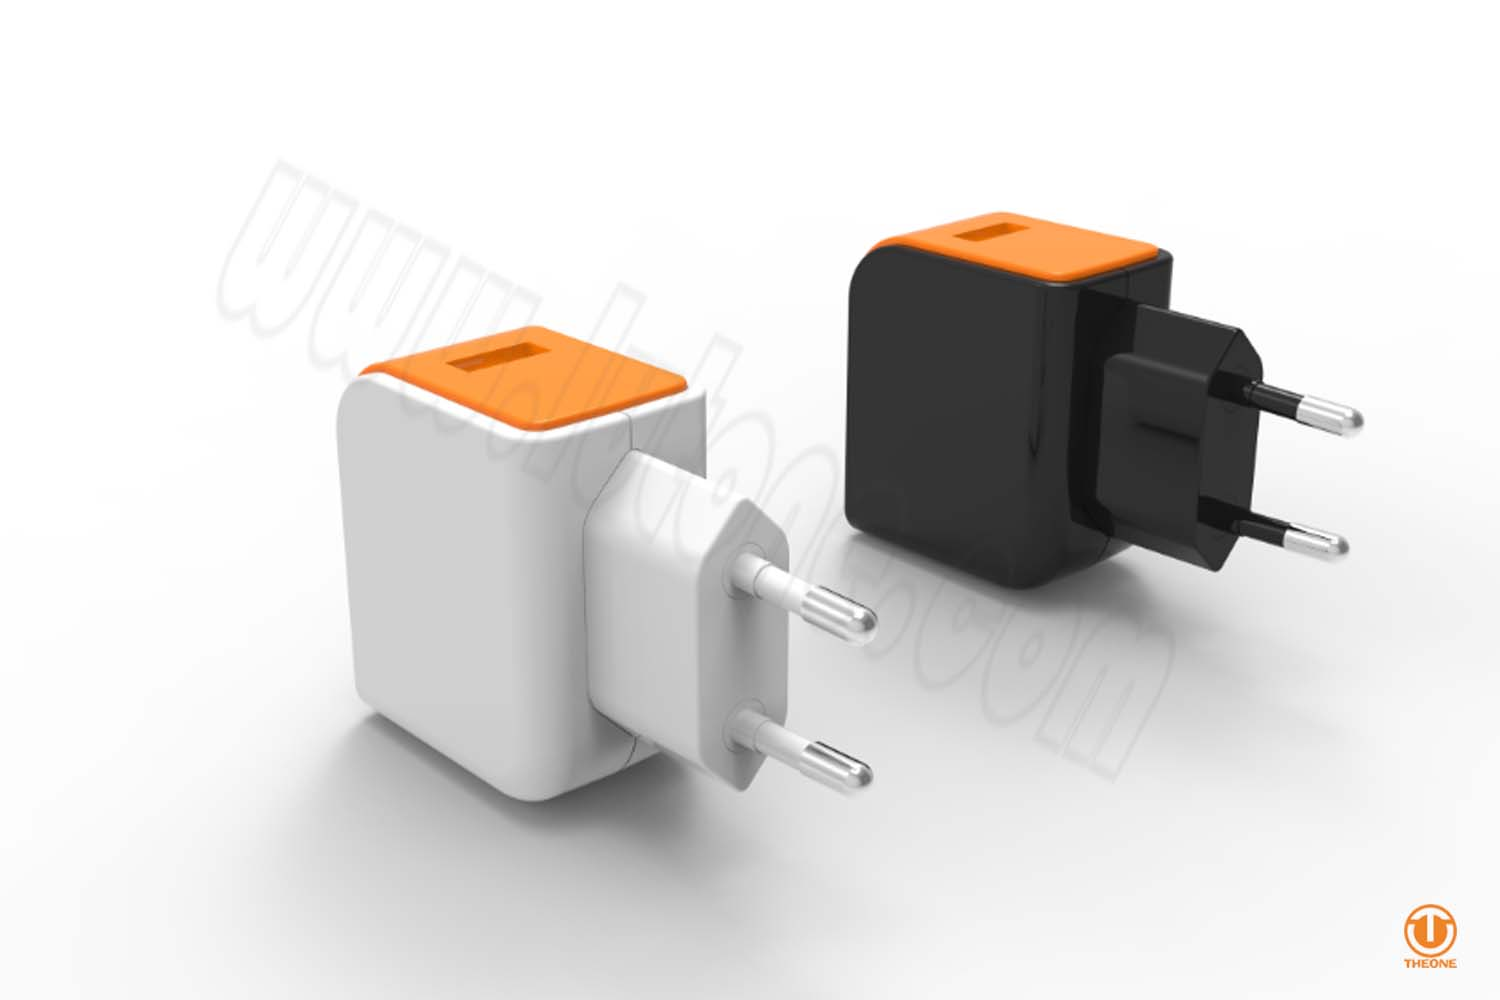 tc02b2-2 usb wall charger